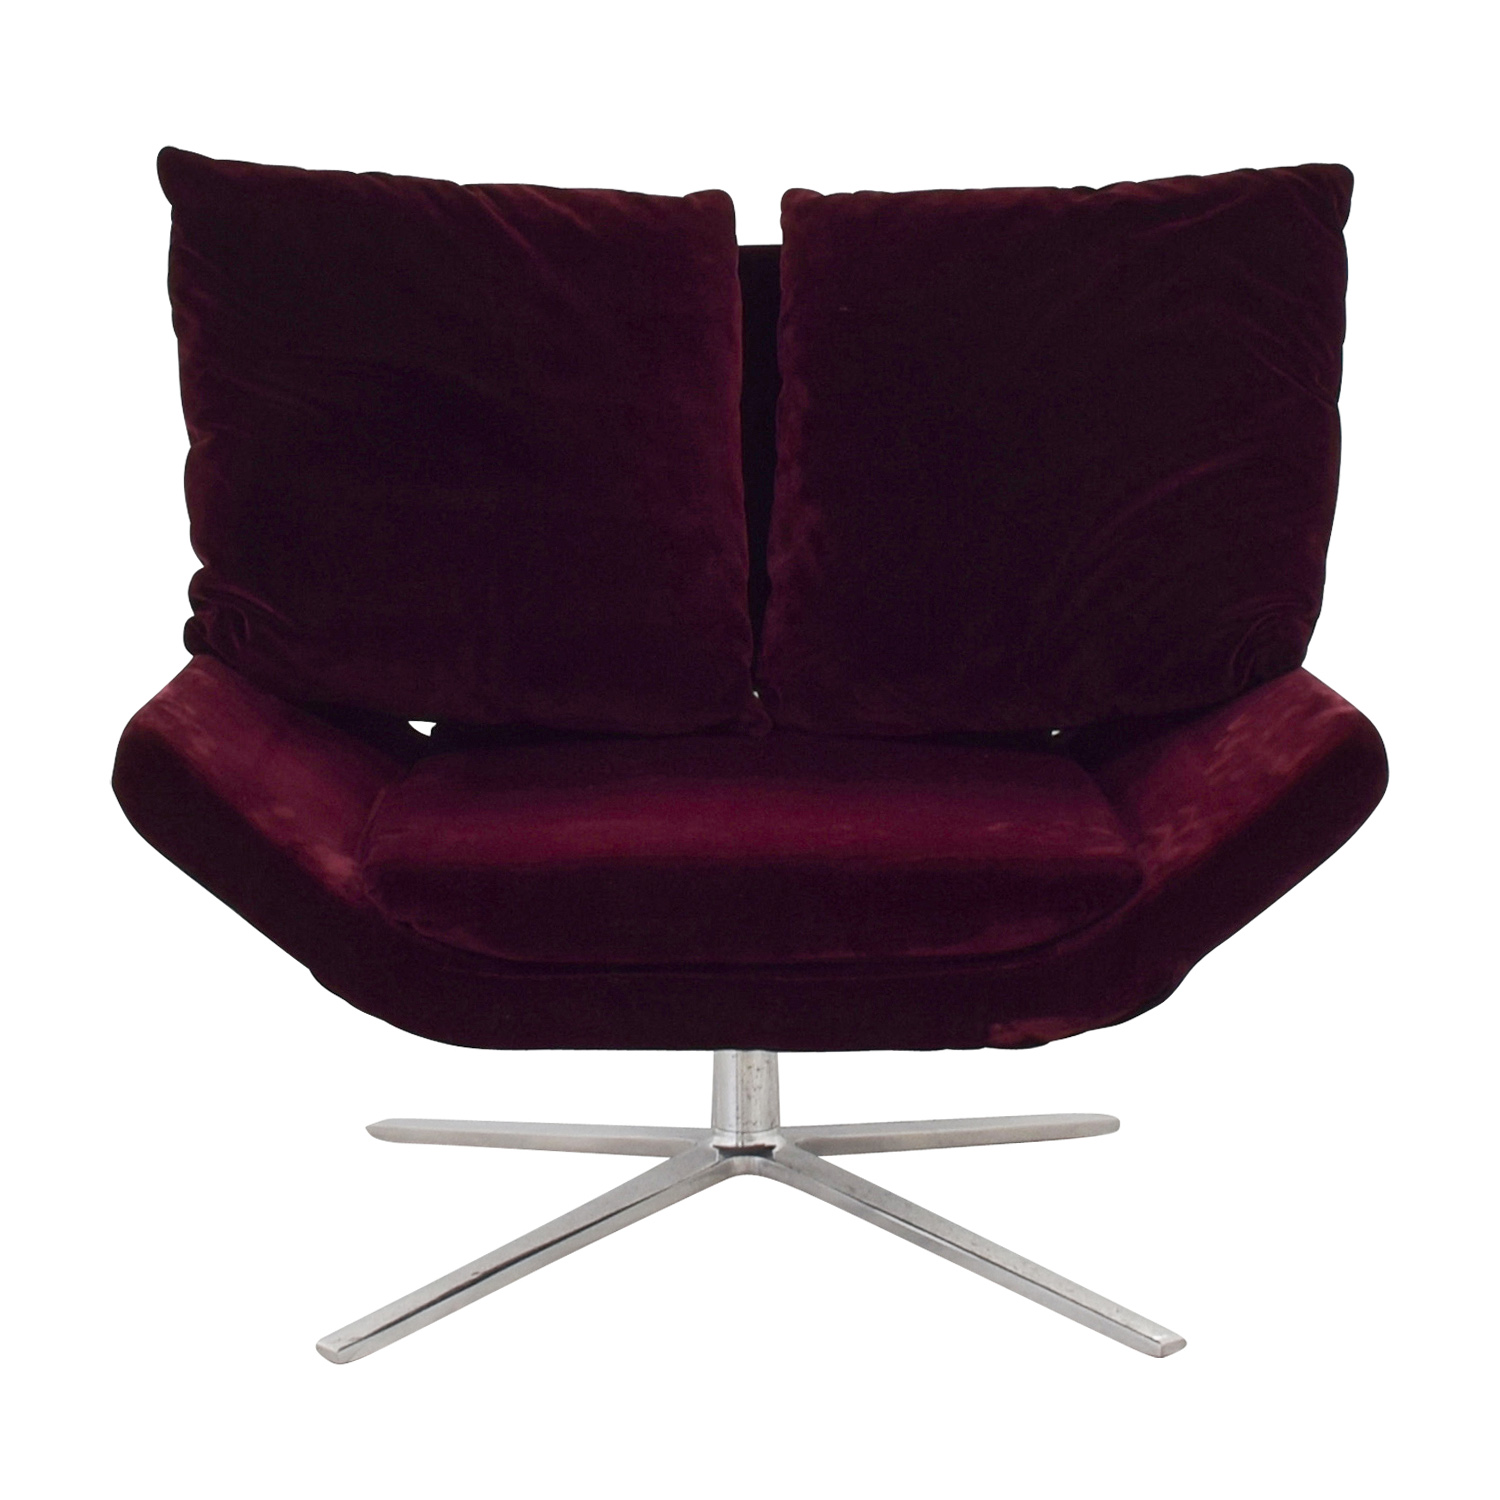 shop Ligne Roset Ligne Roset Burgundy Velvet Swivel Chair online